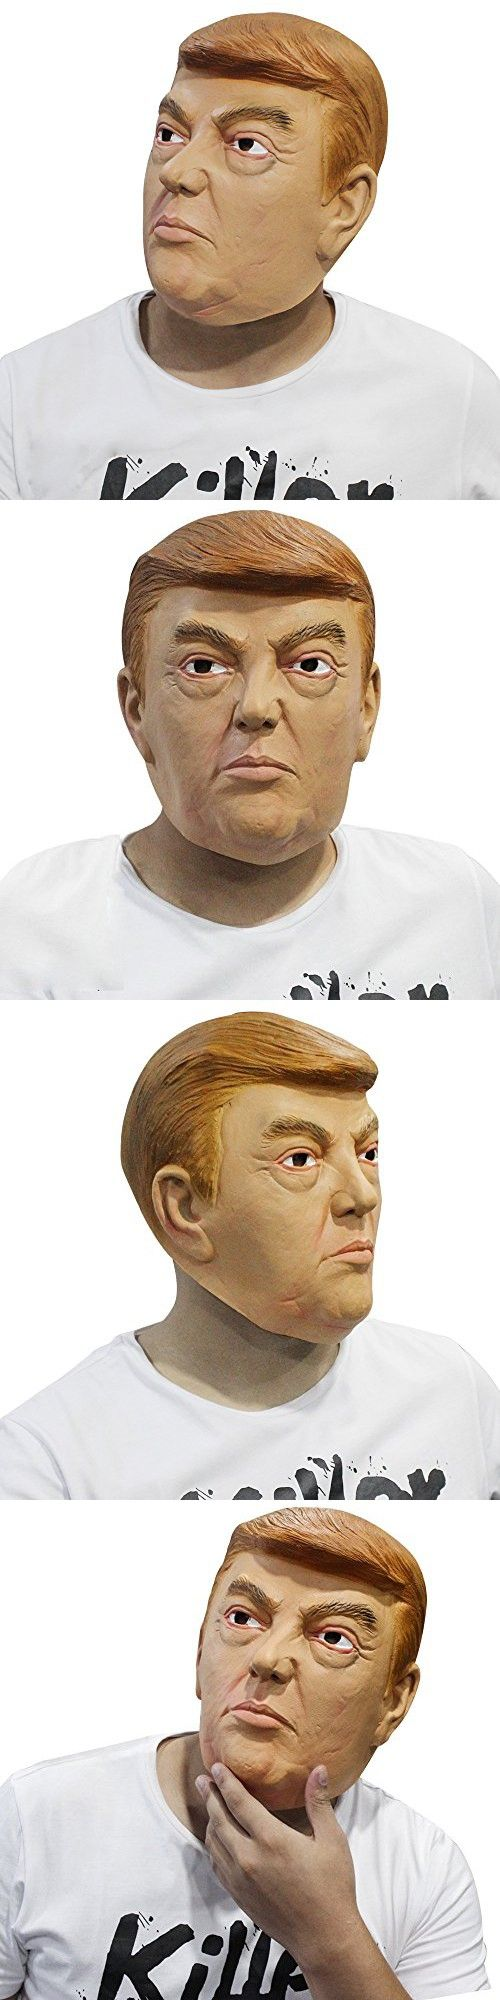 Top 25+ best Donald trump costume ideas on Pinterest | Trump ...